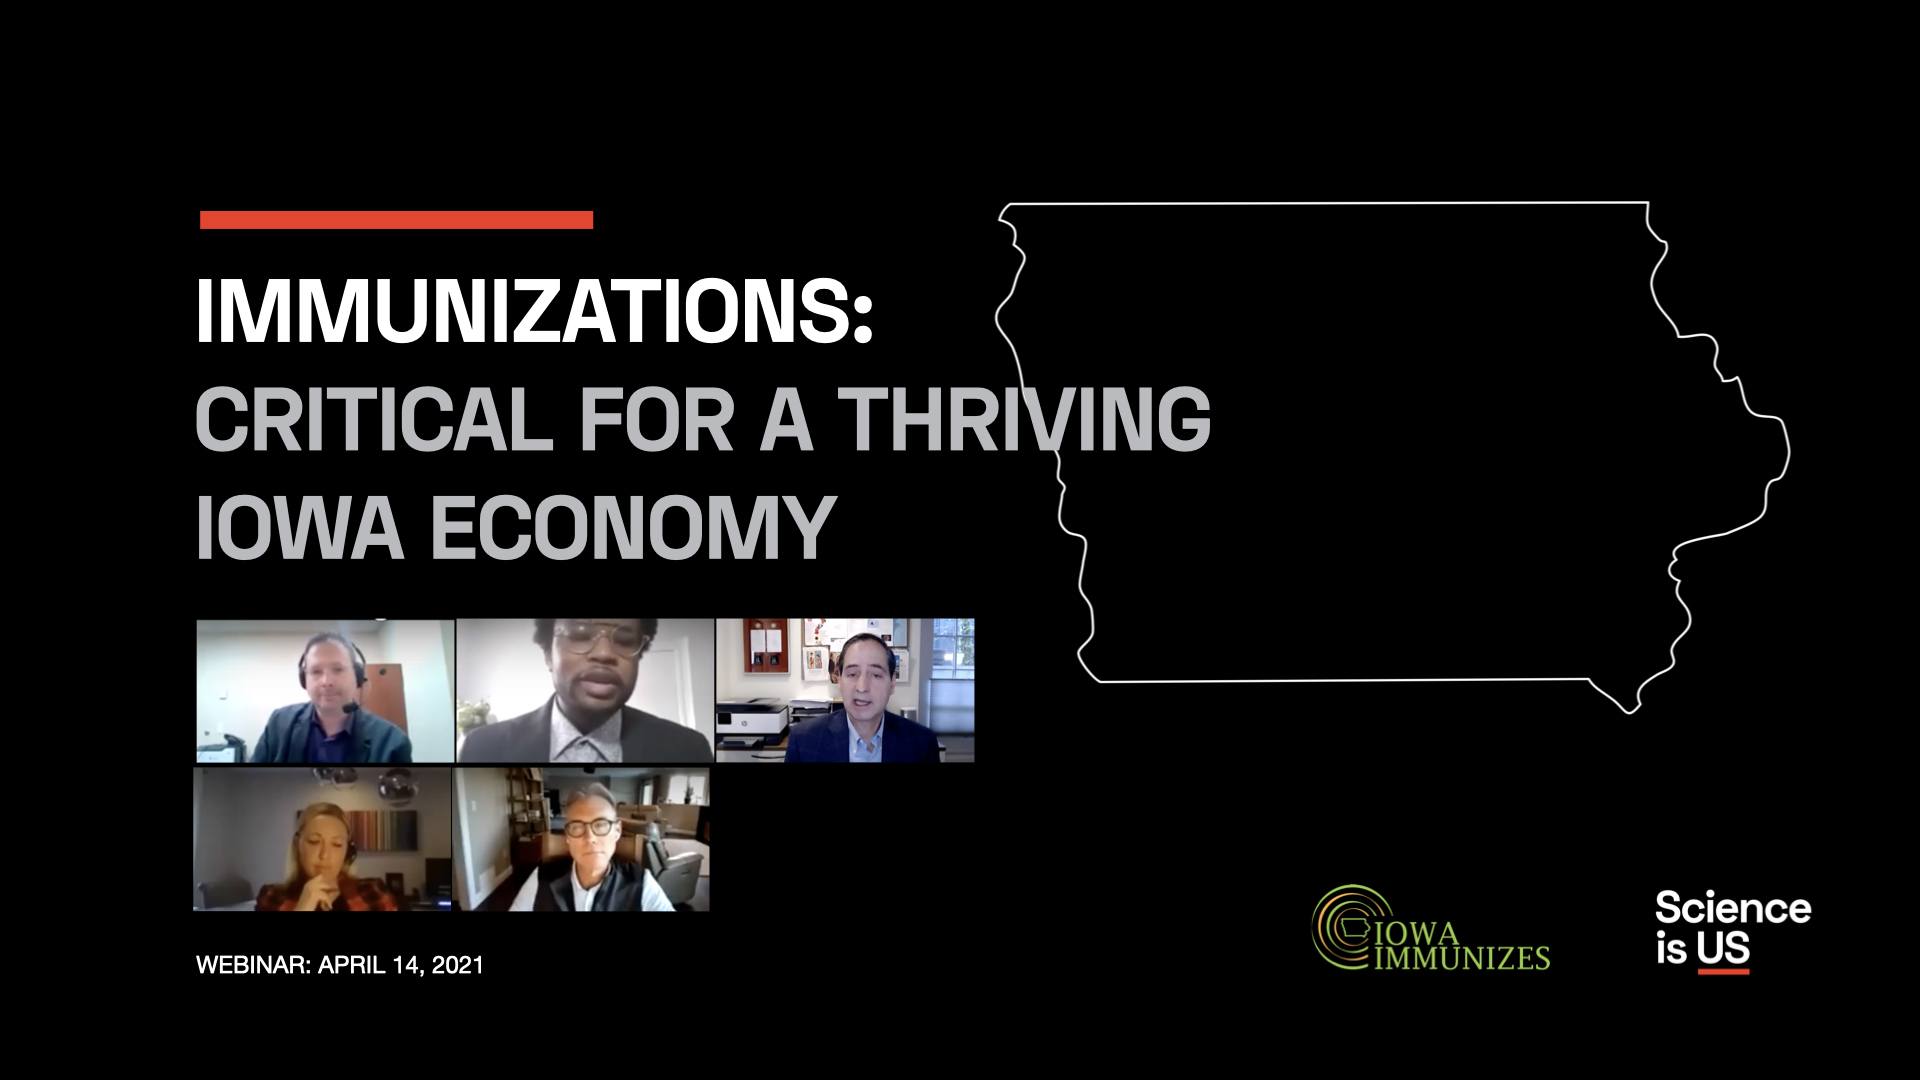 Immunizations Critical For A Thriving Iowa Economy Hosted By Iowa Immunizes And Science Is US